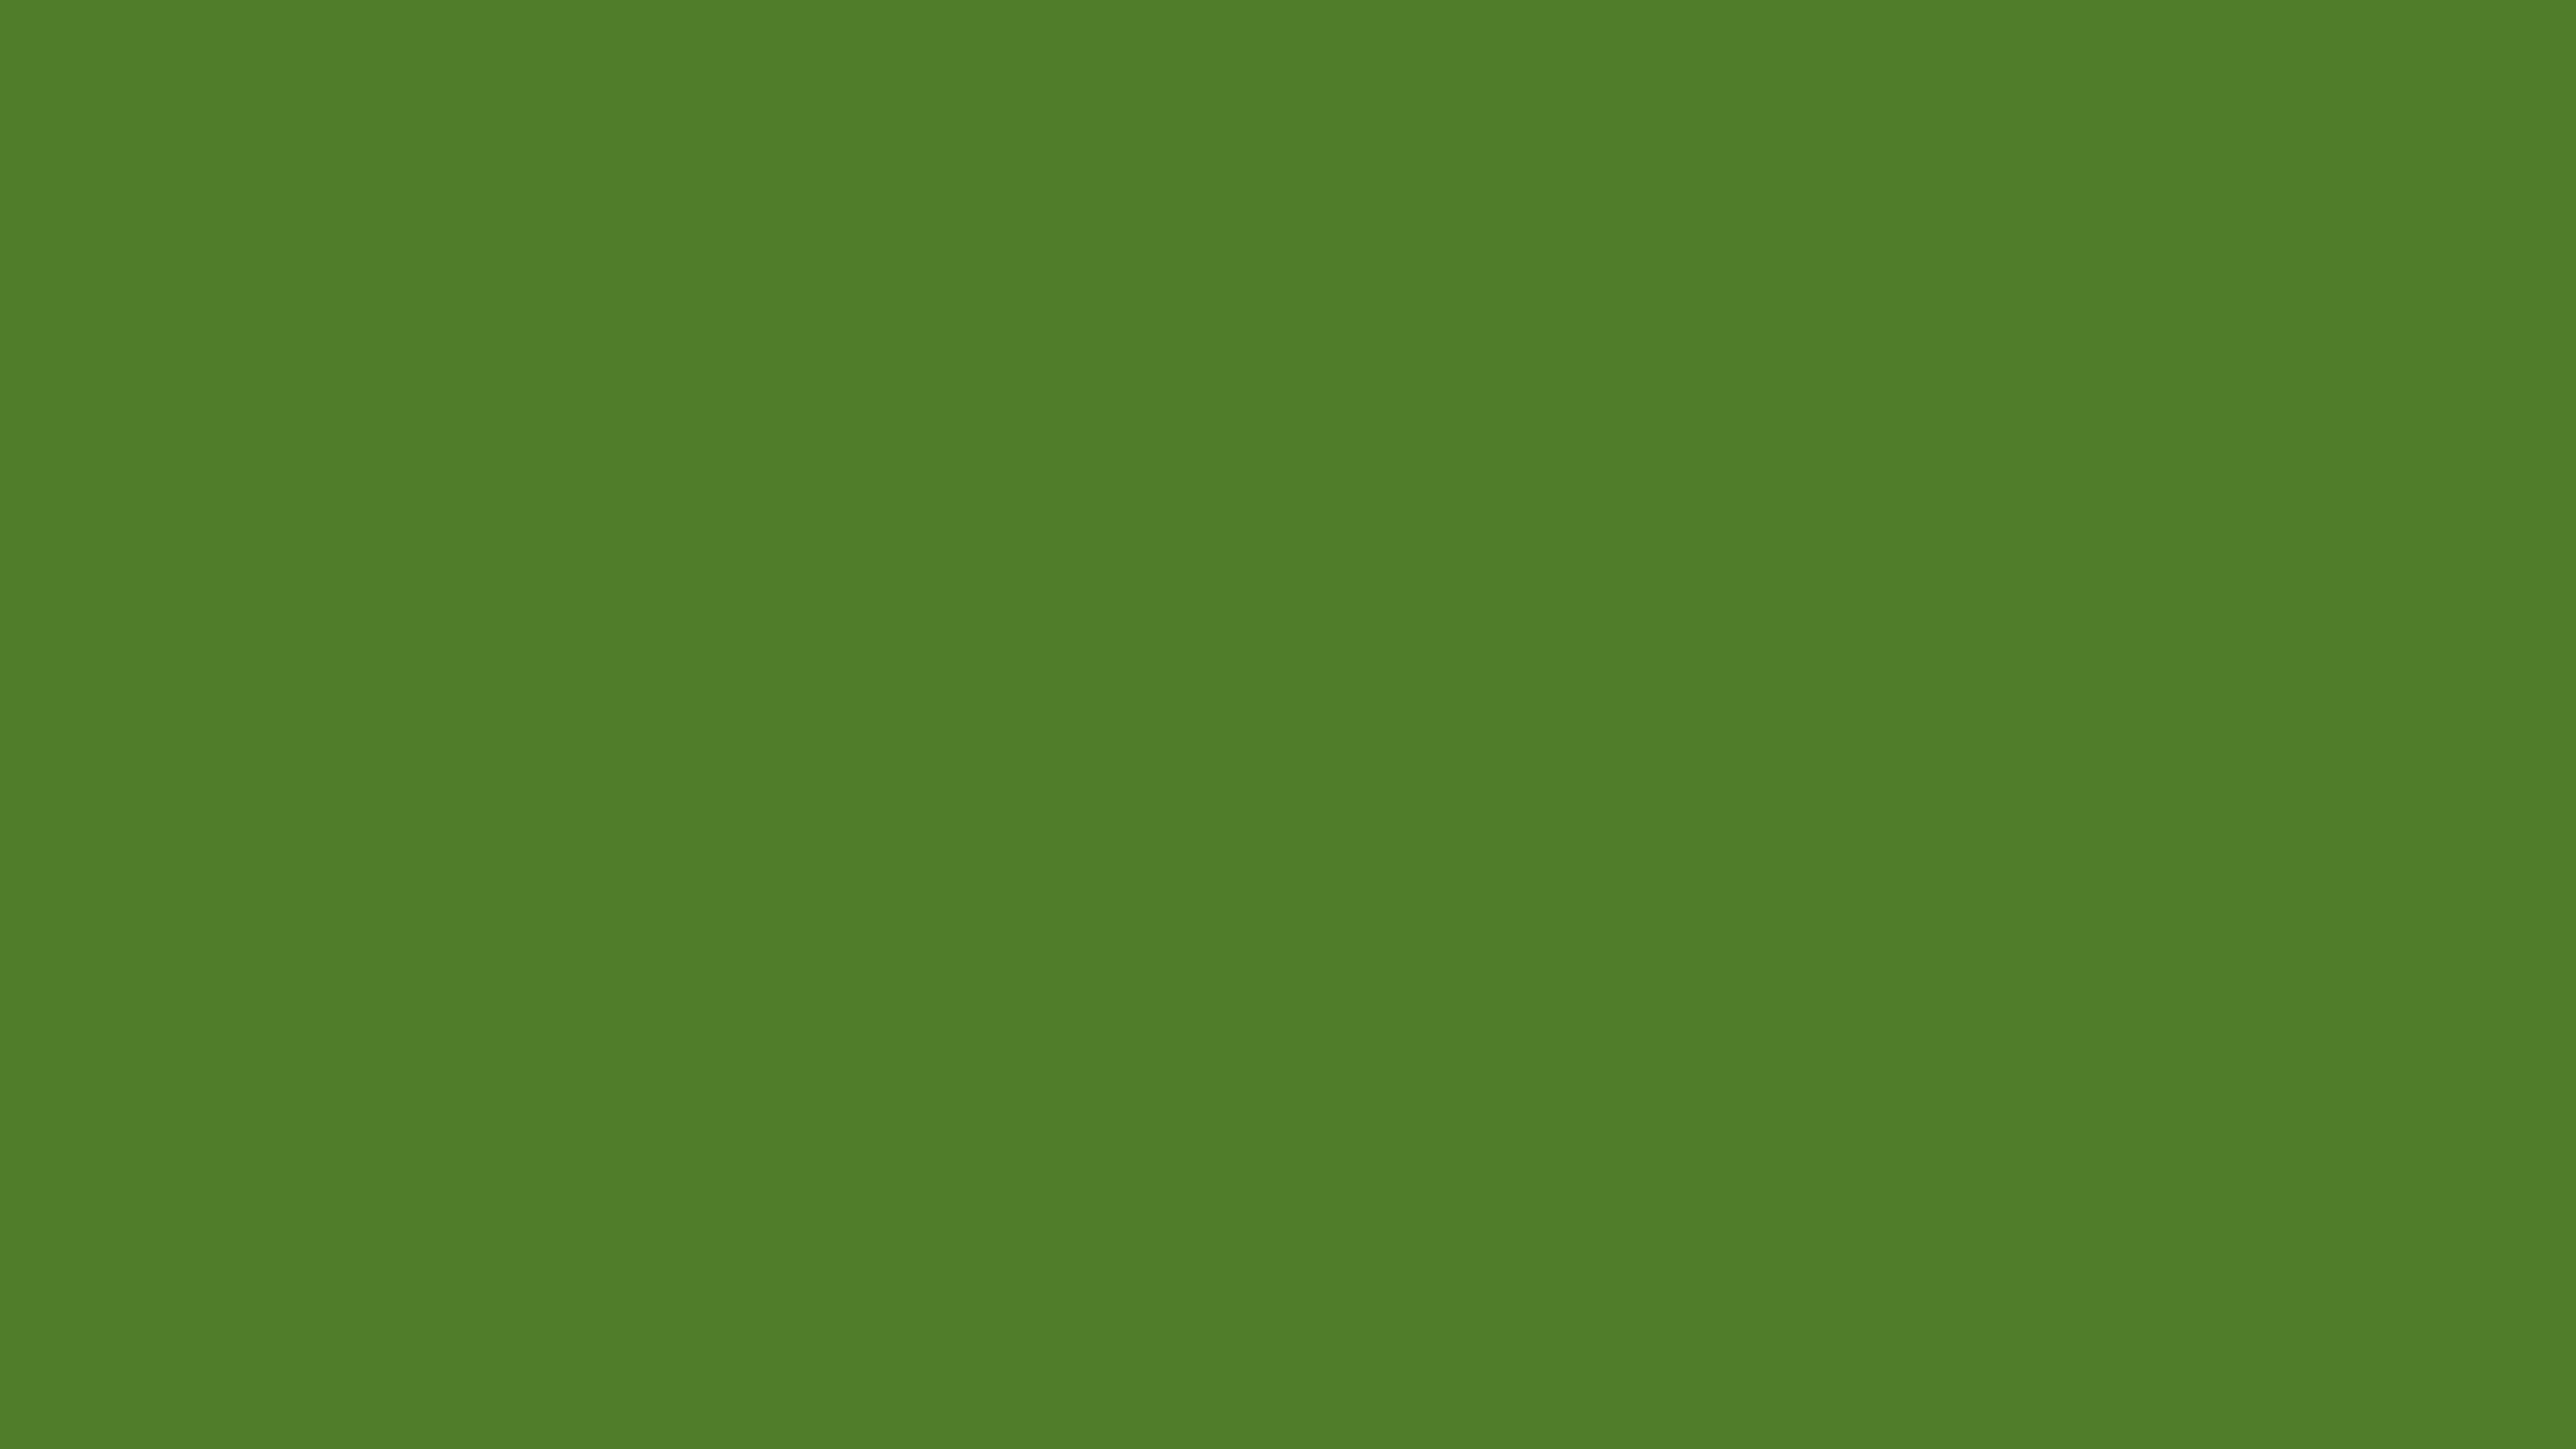 7680x4320 Sap Green Solid Color Background